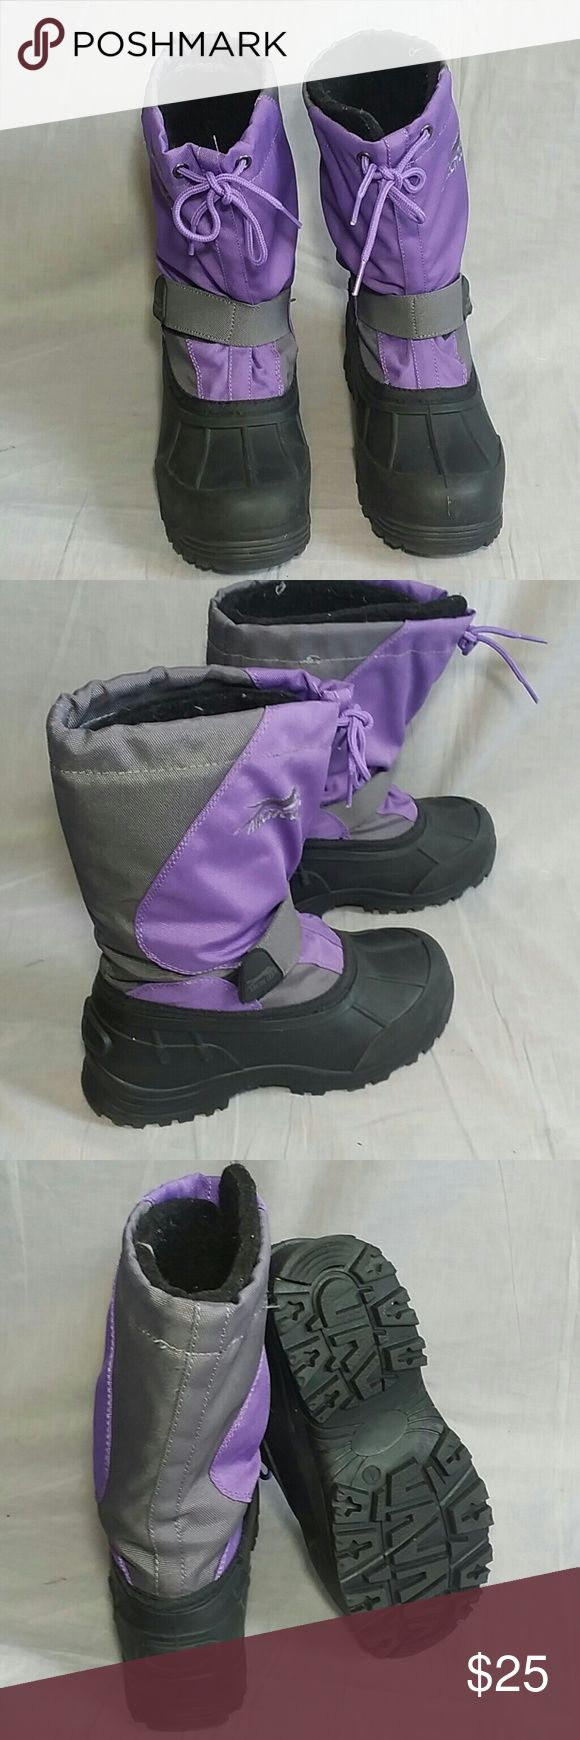 Kid's Winter Boots Arctic Cat 4 M Rubber Insulated Item is in a good condition NO PETS AND SMOKE FREE HOME. artic cat  Shoes Rain & Snow Boots